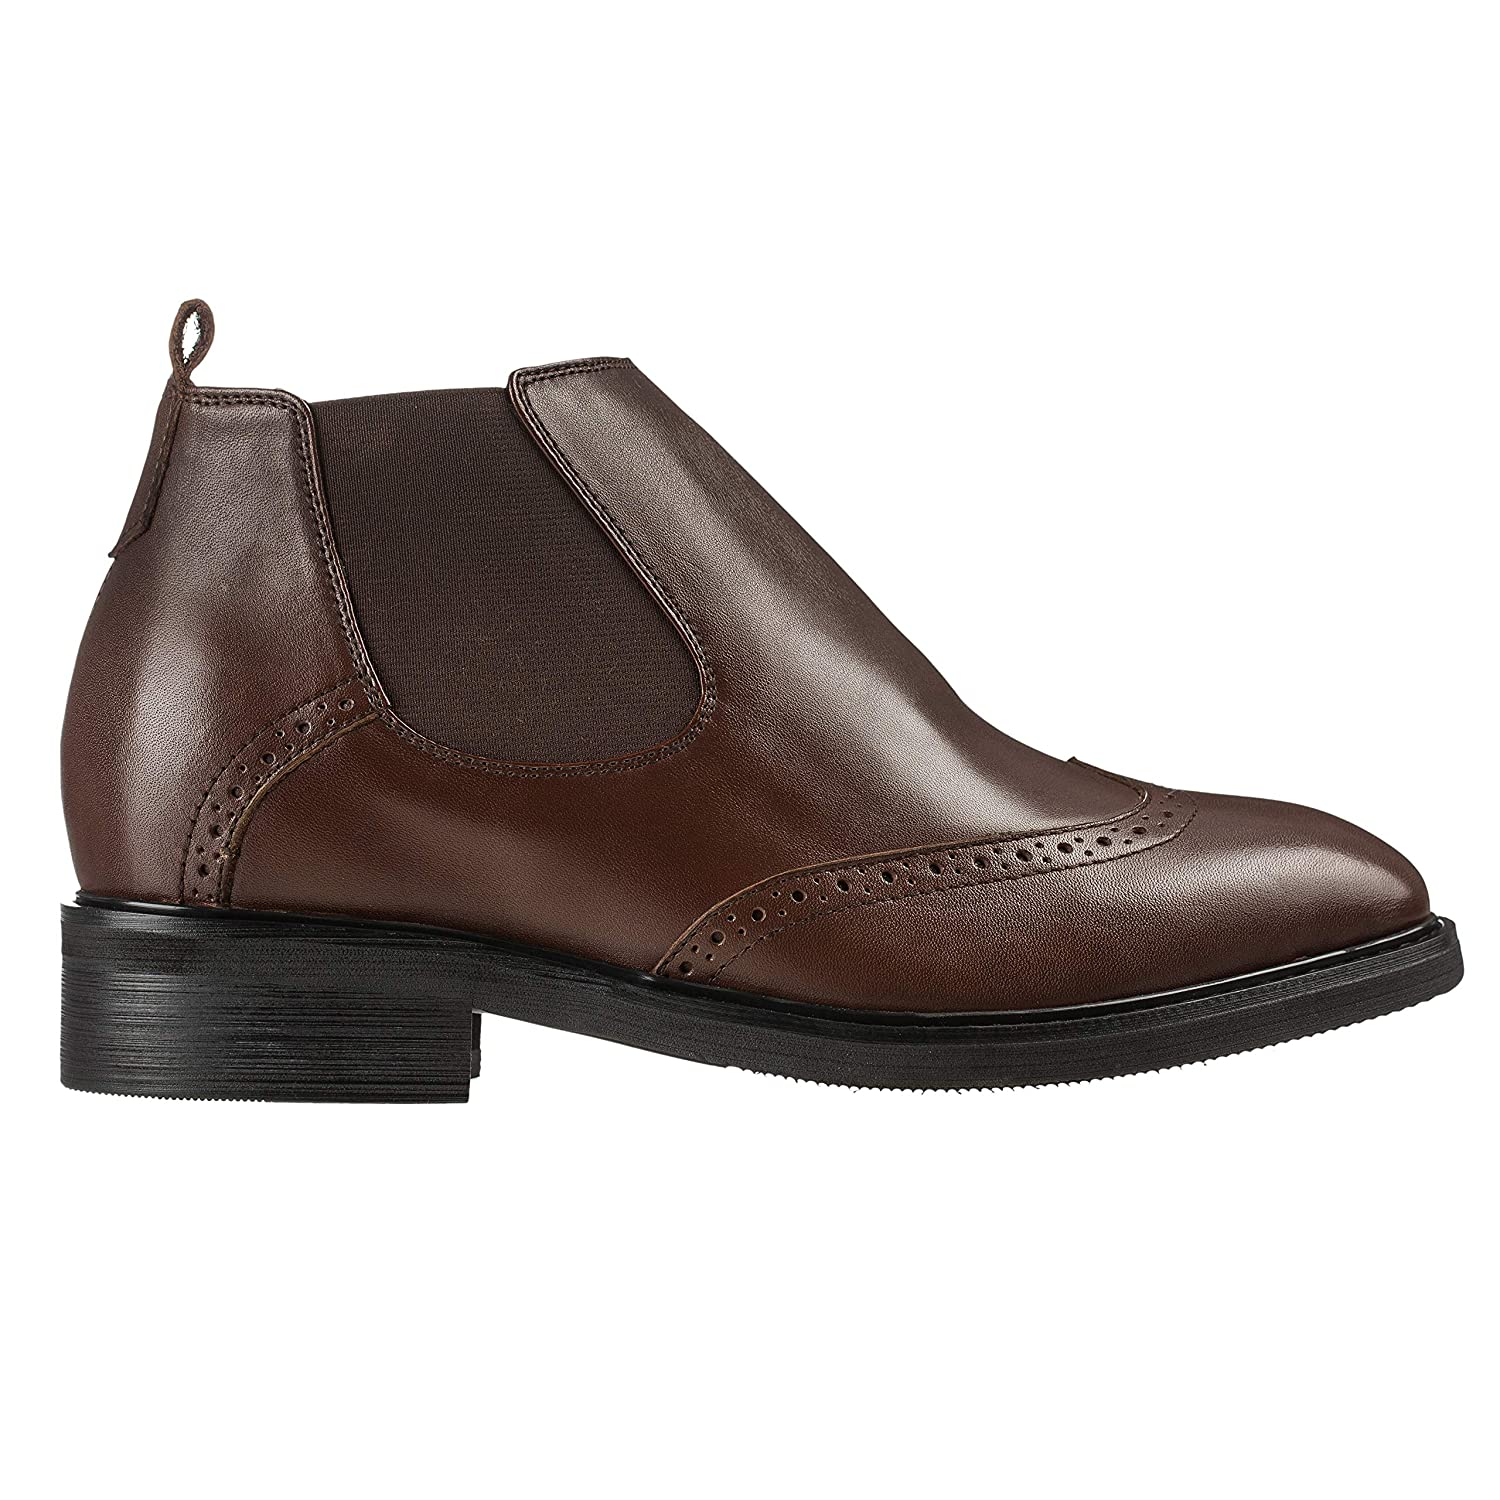 3 Inches Taller K288021 Calden Mens Invisible Height Increasing Elevator Shoes Dark Brown Leather Slip-on Wing-tip Chelsea Boots